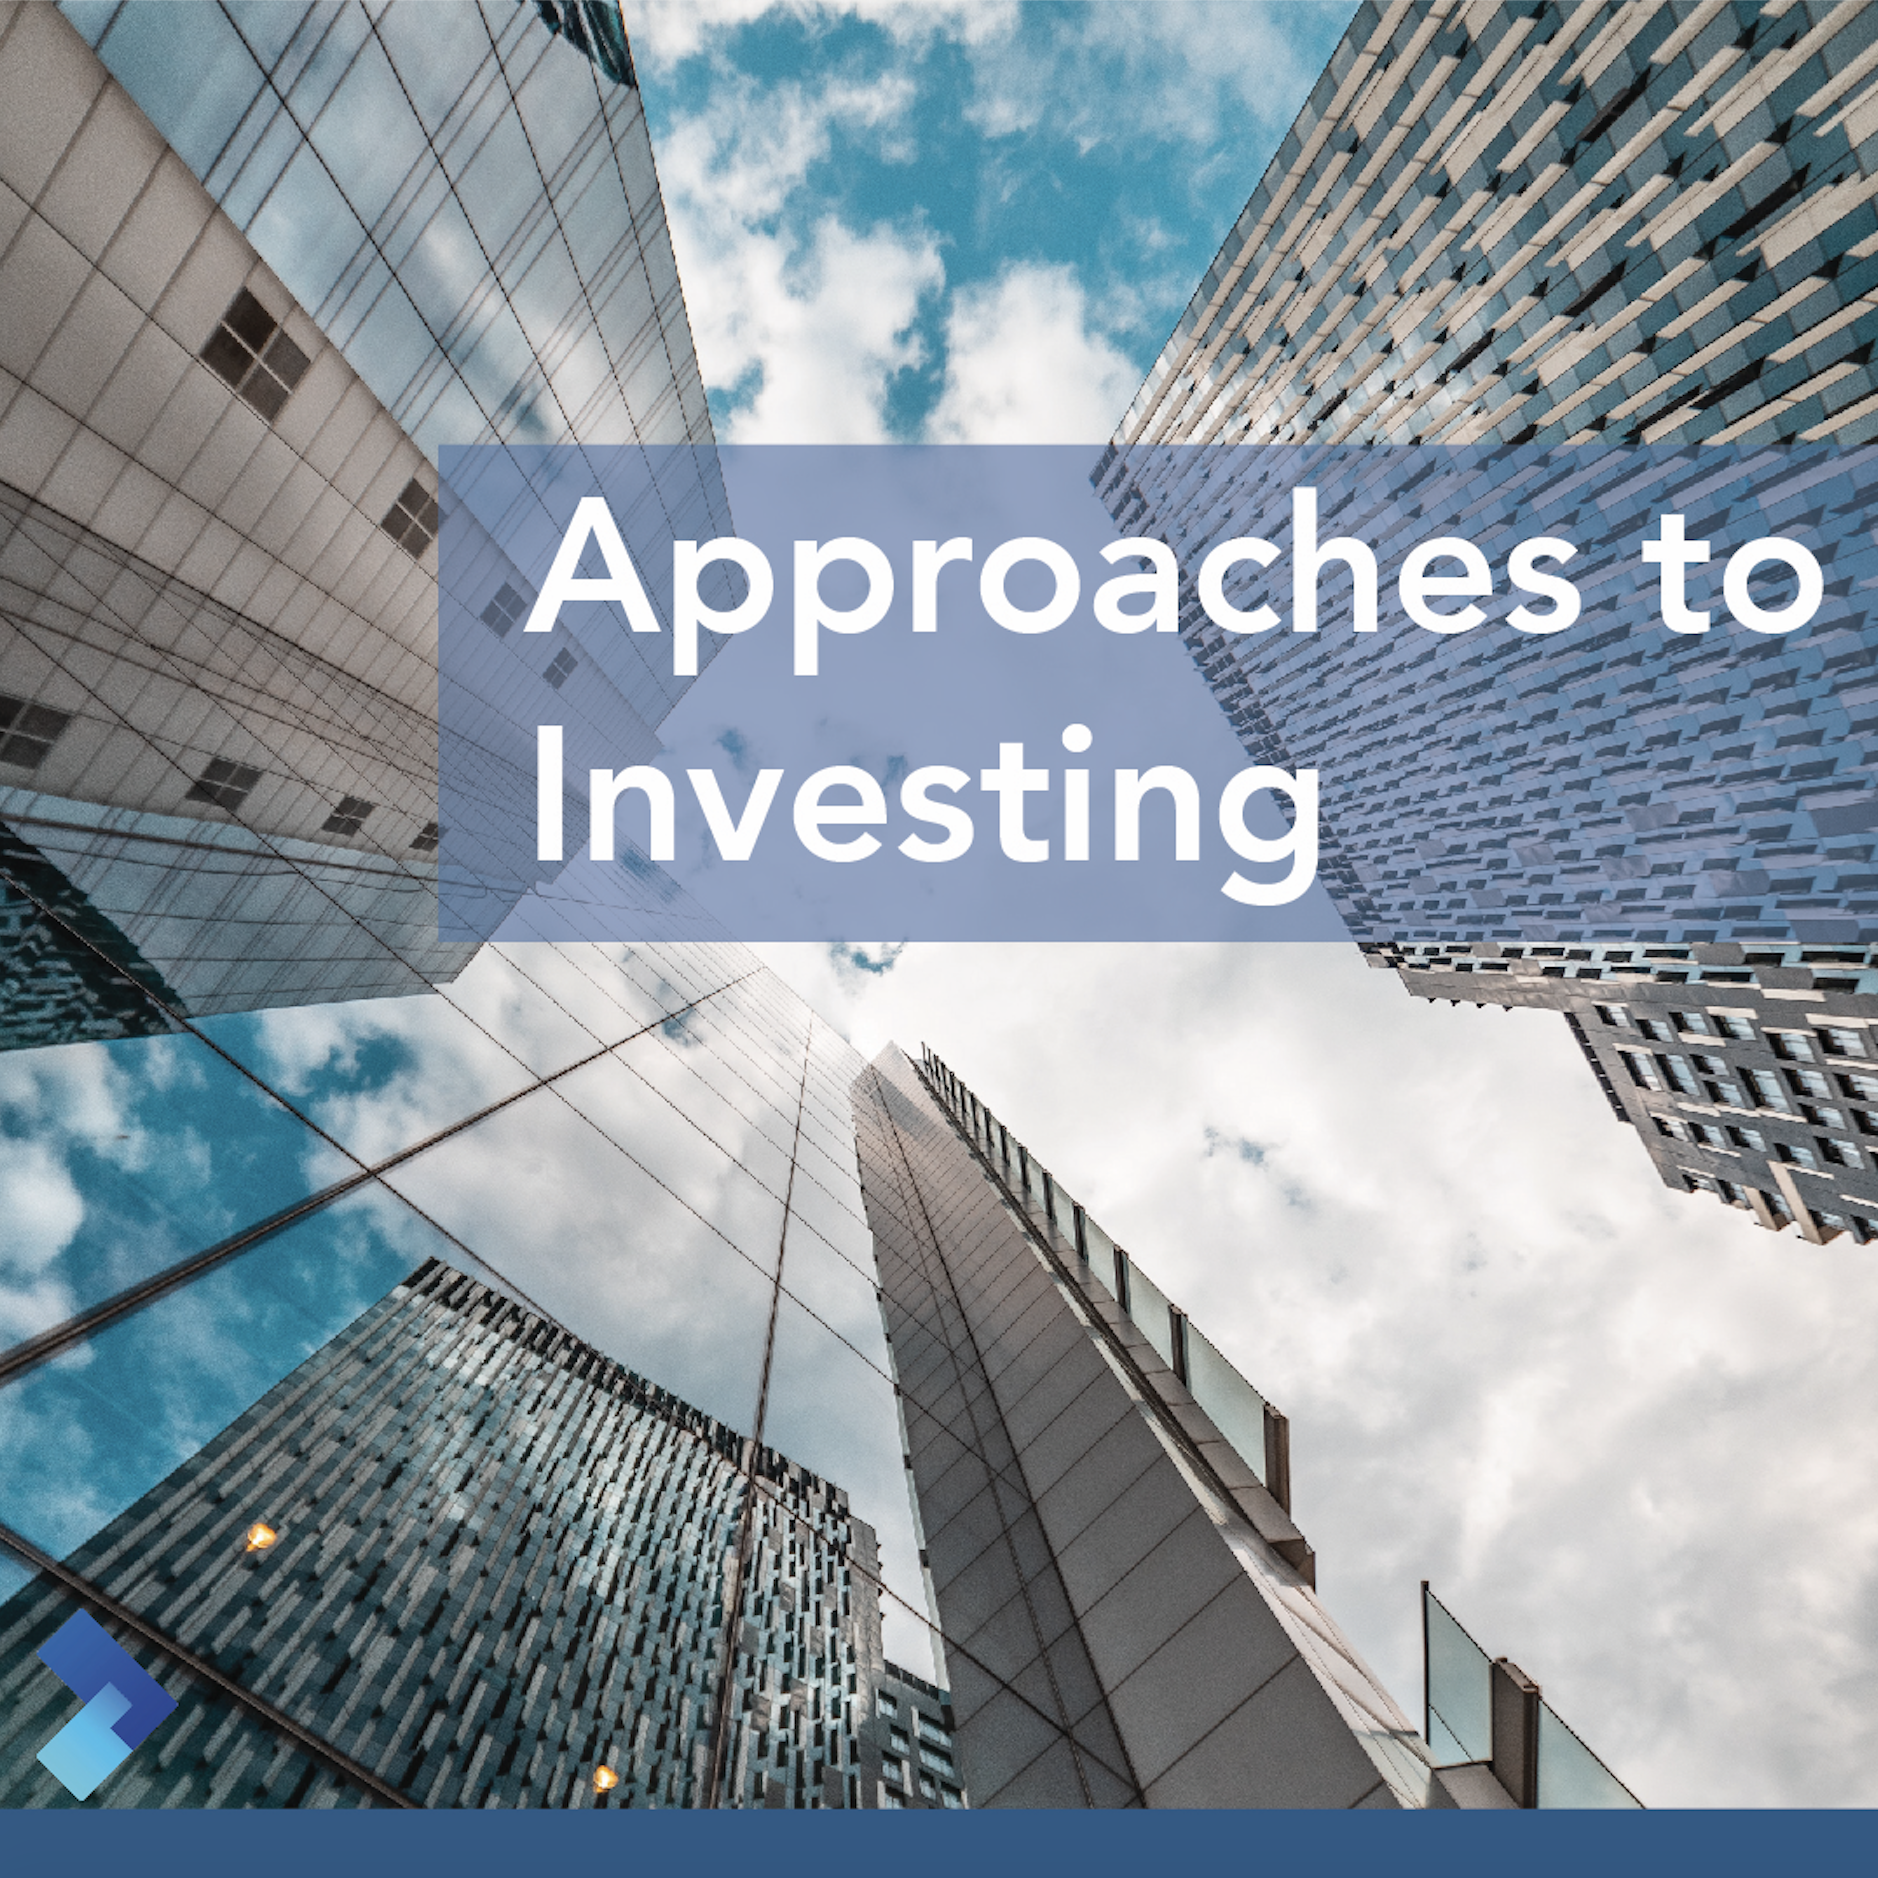 What are the Common Approaches to Investing?